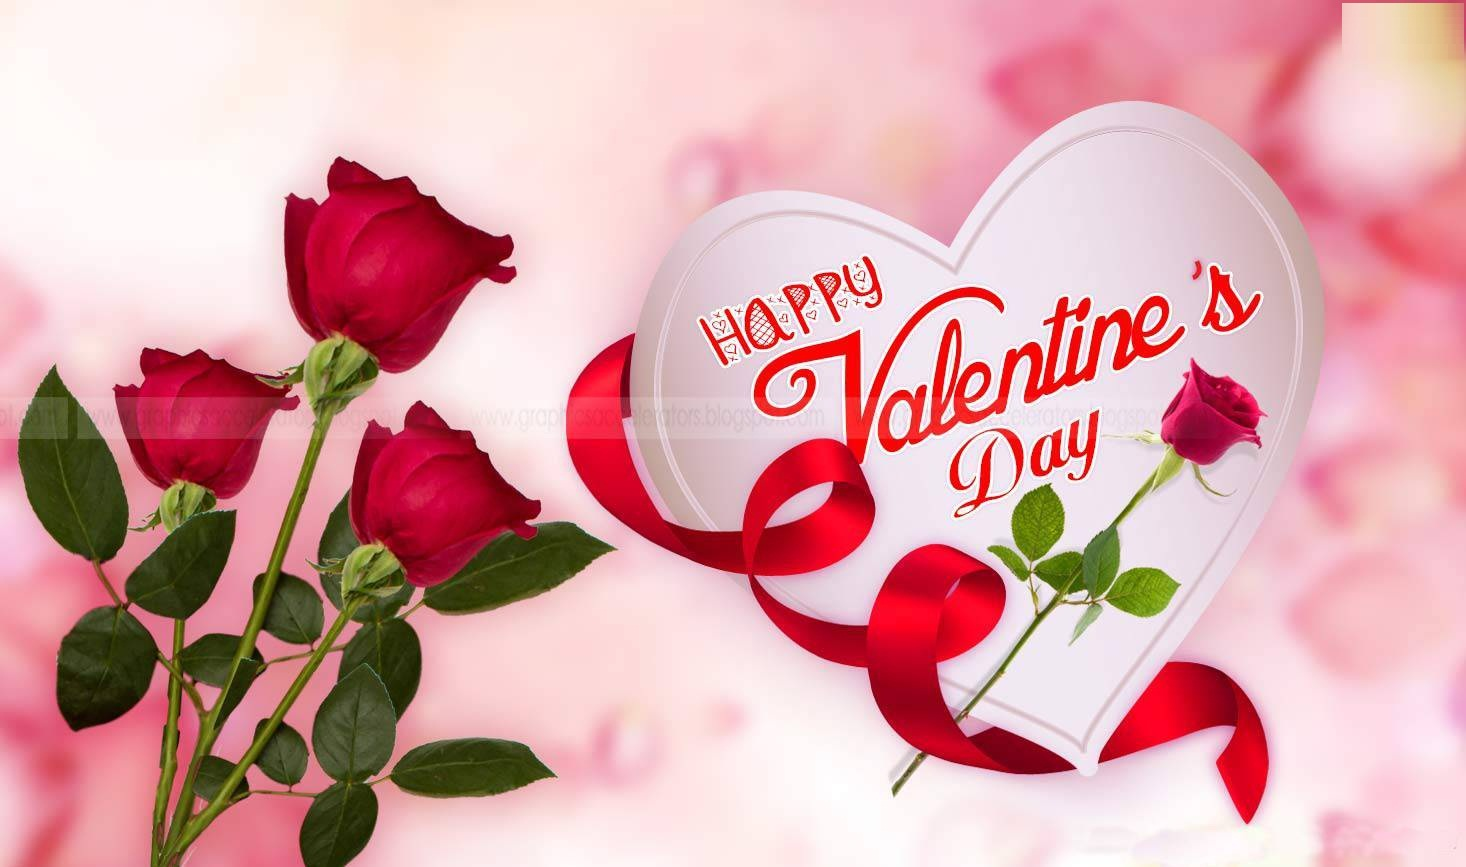 happy valentines day 2020 wishes cards images hd wallpapers